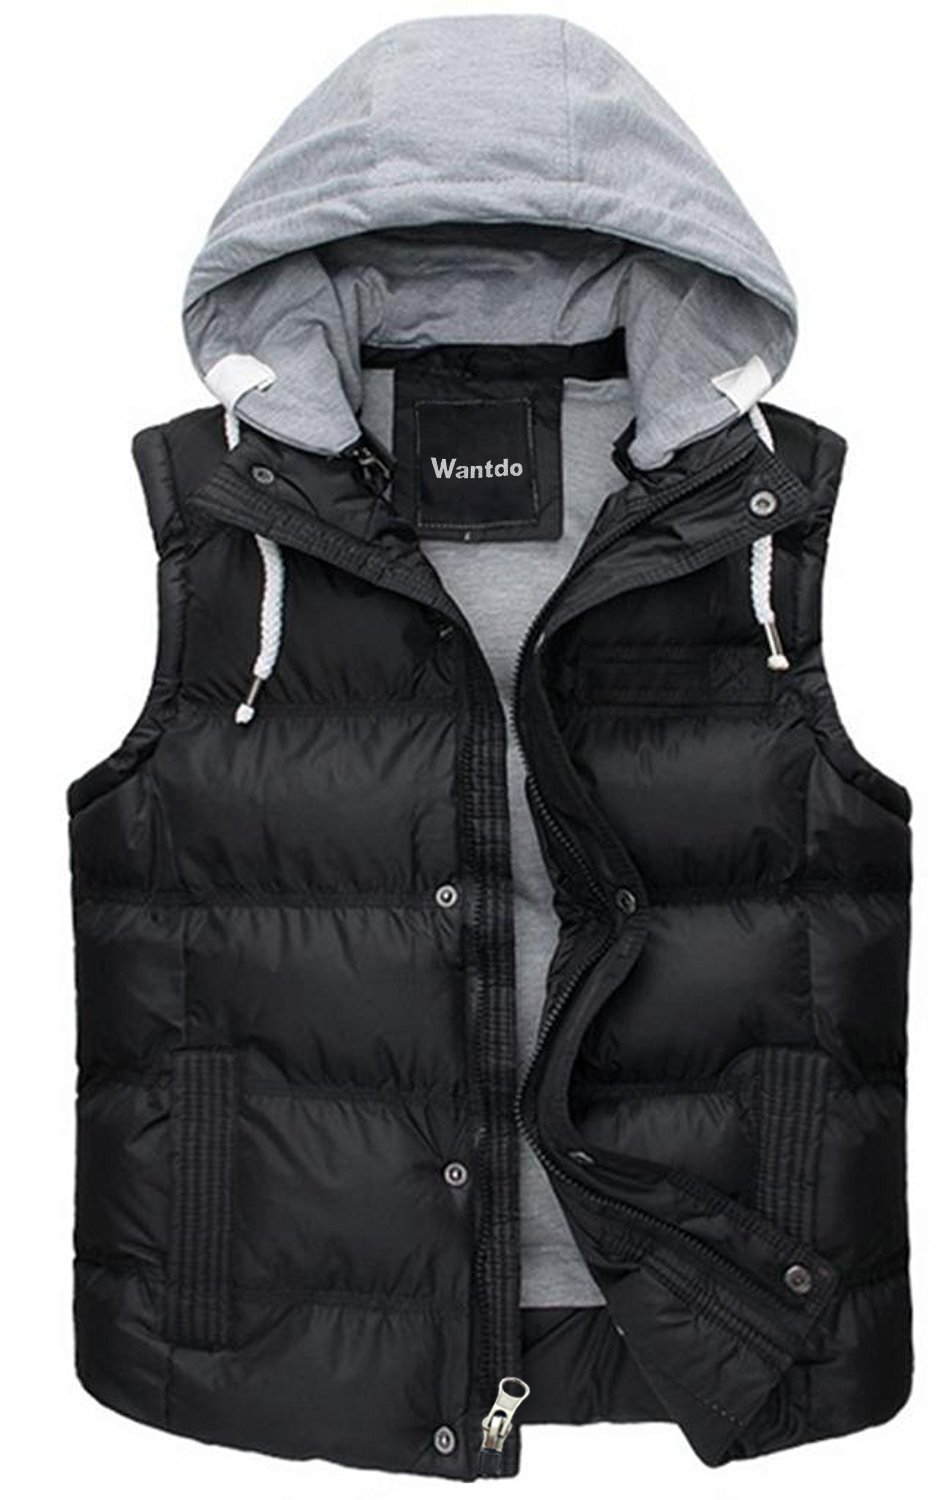 Wantdo Men's Winter Removable Hooded Quilted Vest Outwear Large (Tag size XXL) Black by Wantdo